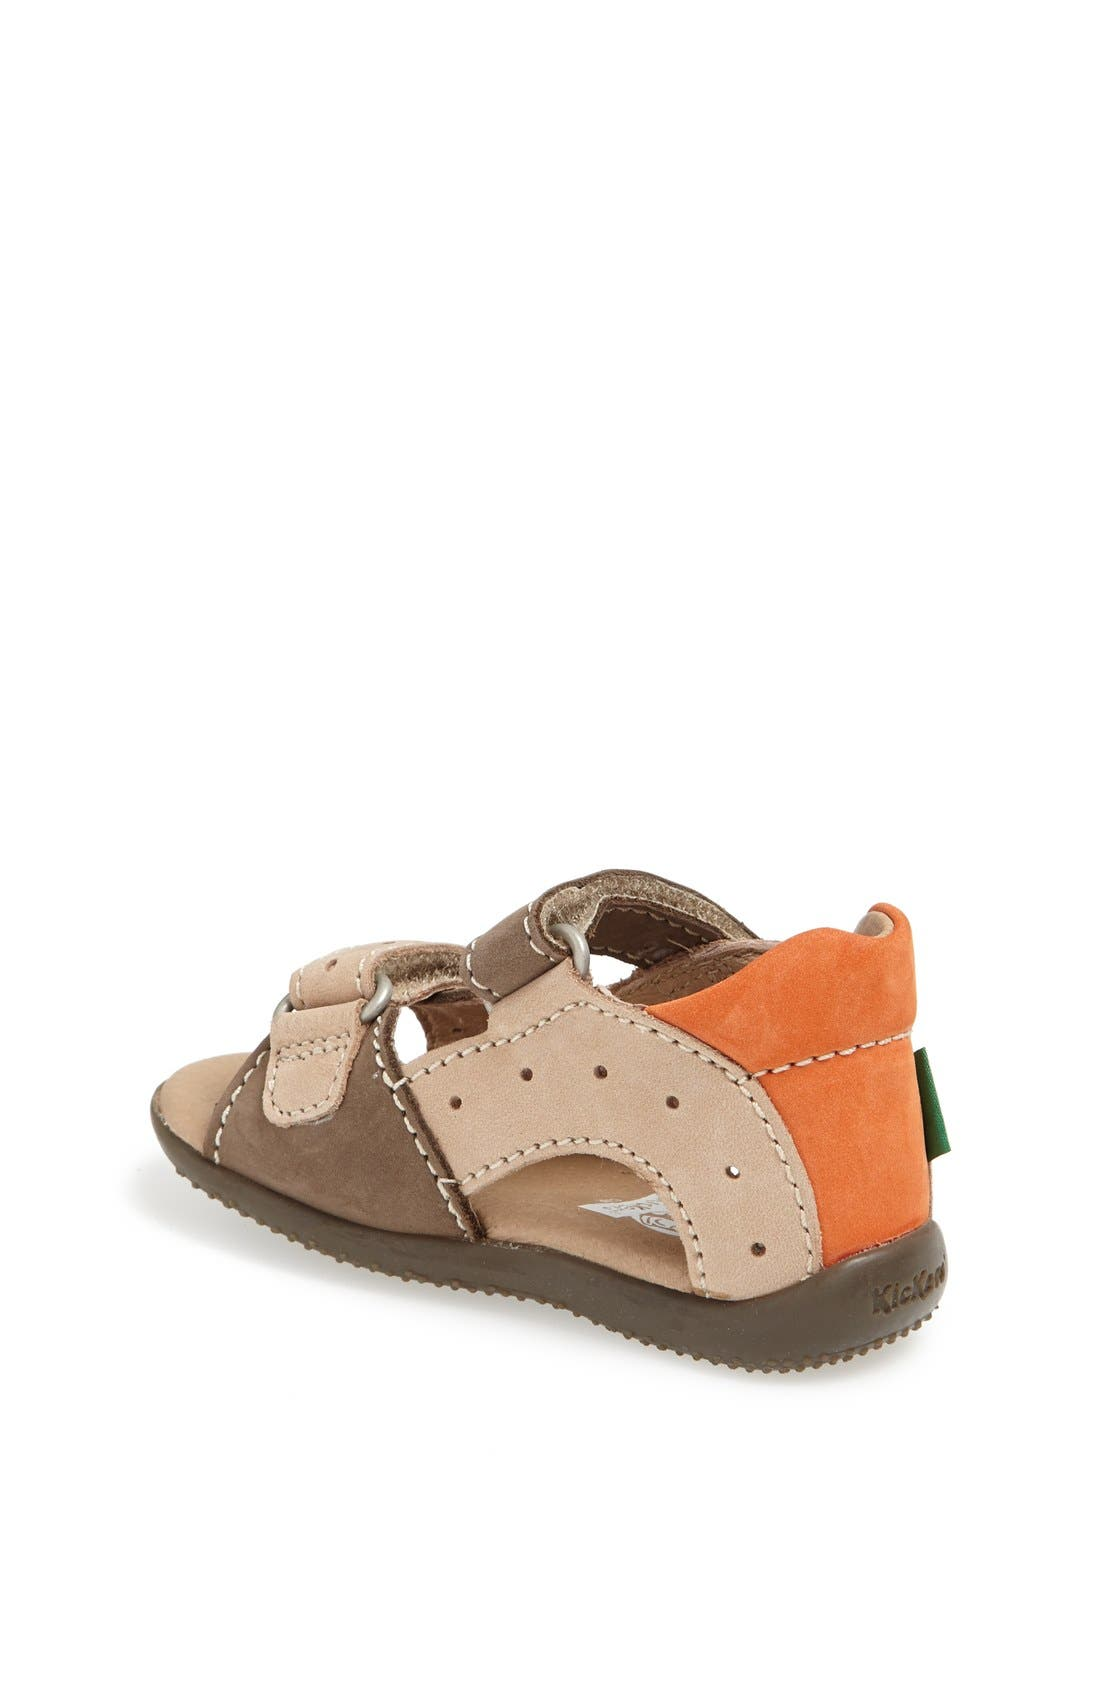 Alternate Image 2  - Kickers 'Boping 2' Sandal (Baby, Walker & Toddler)